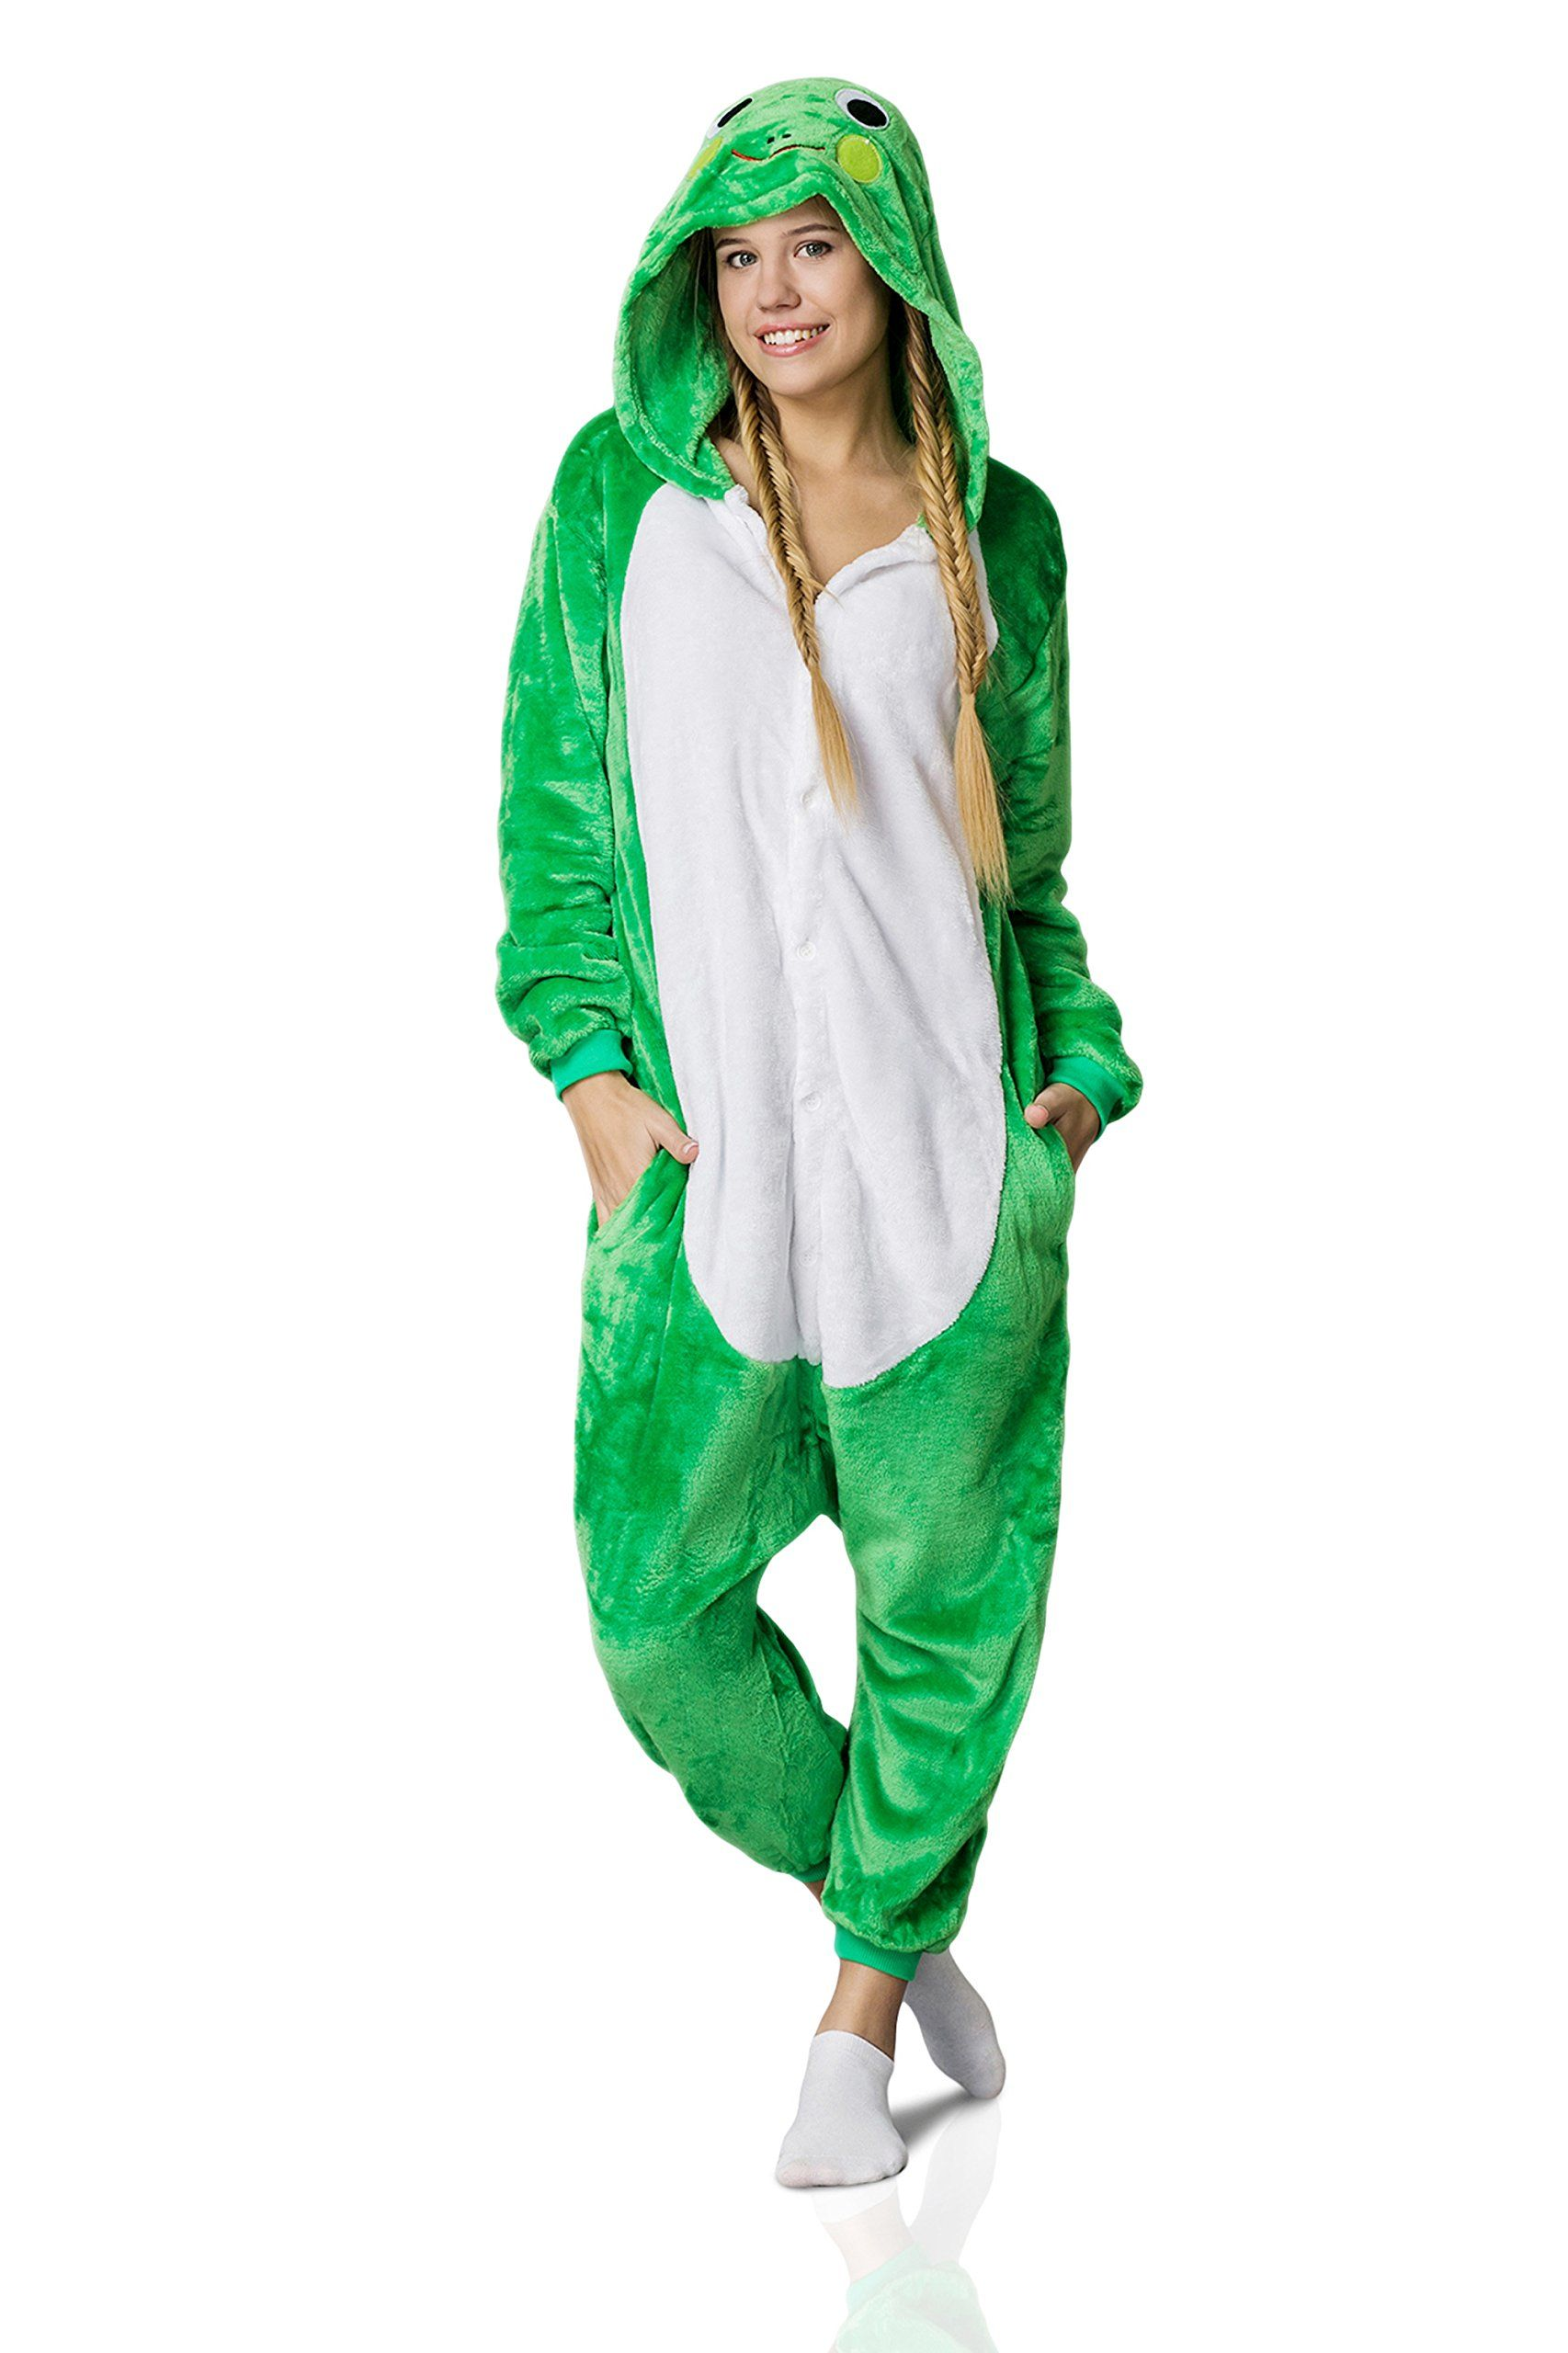 547a0706c Nothing But Love Adult Frog Onesie Pajamas Kigurumi Animal Cosplay Costume  One Piece Fleece Pjs XL Green White >>> Make certain to have a look at this  ...